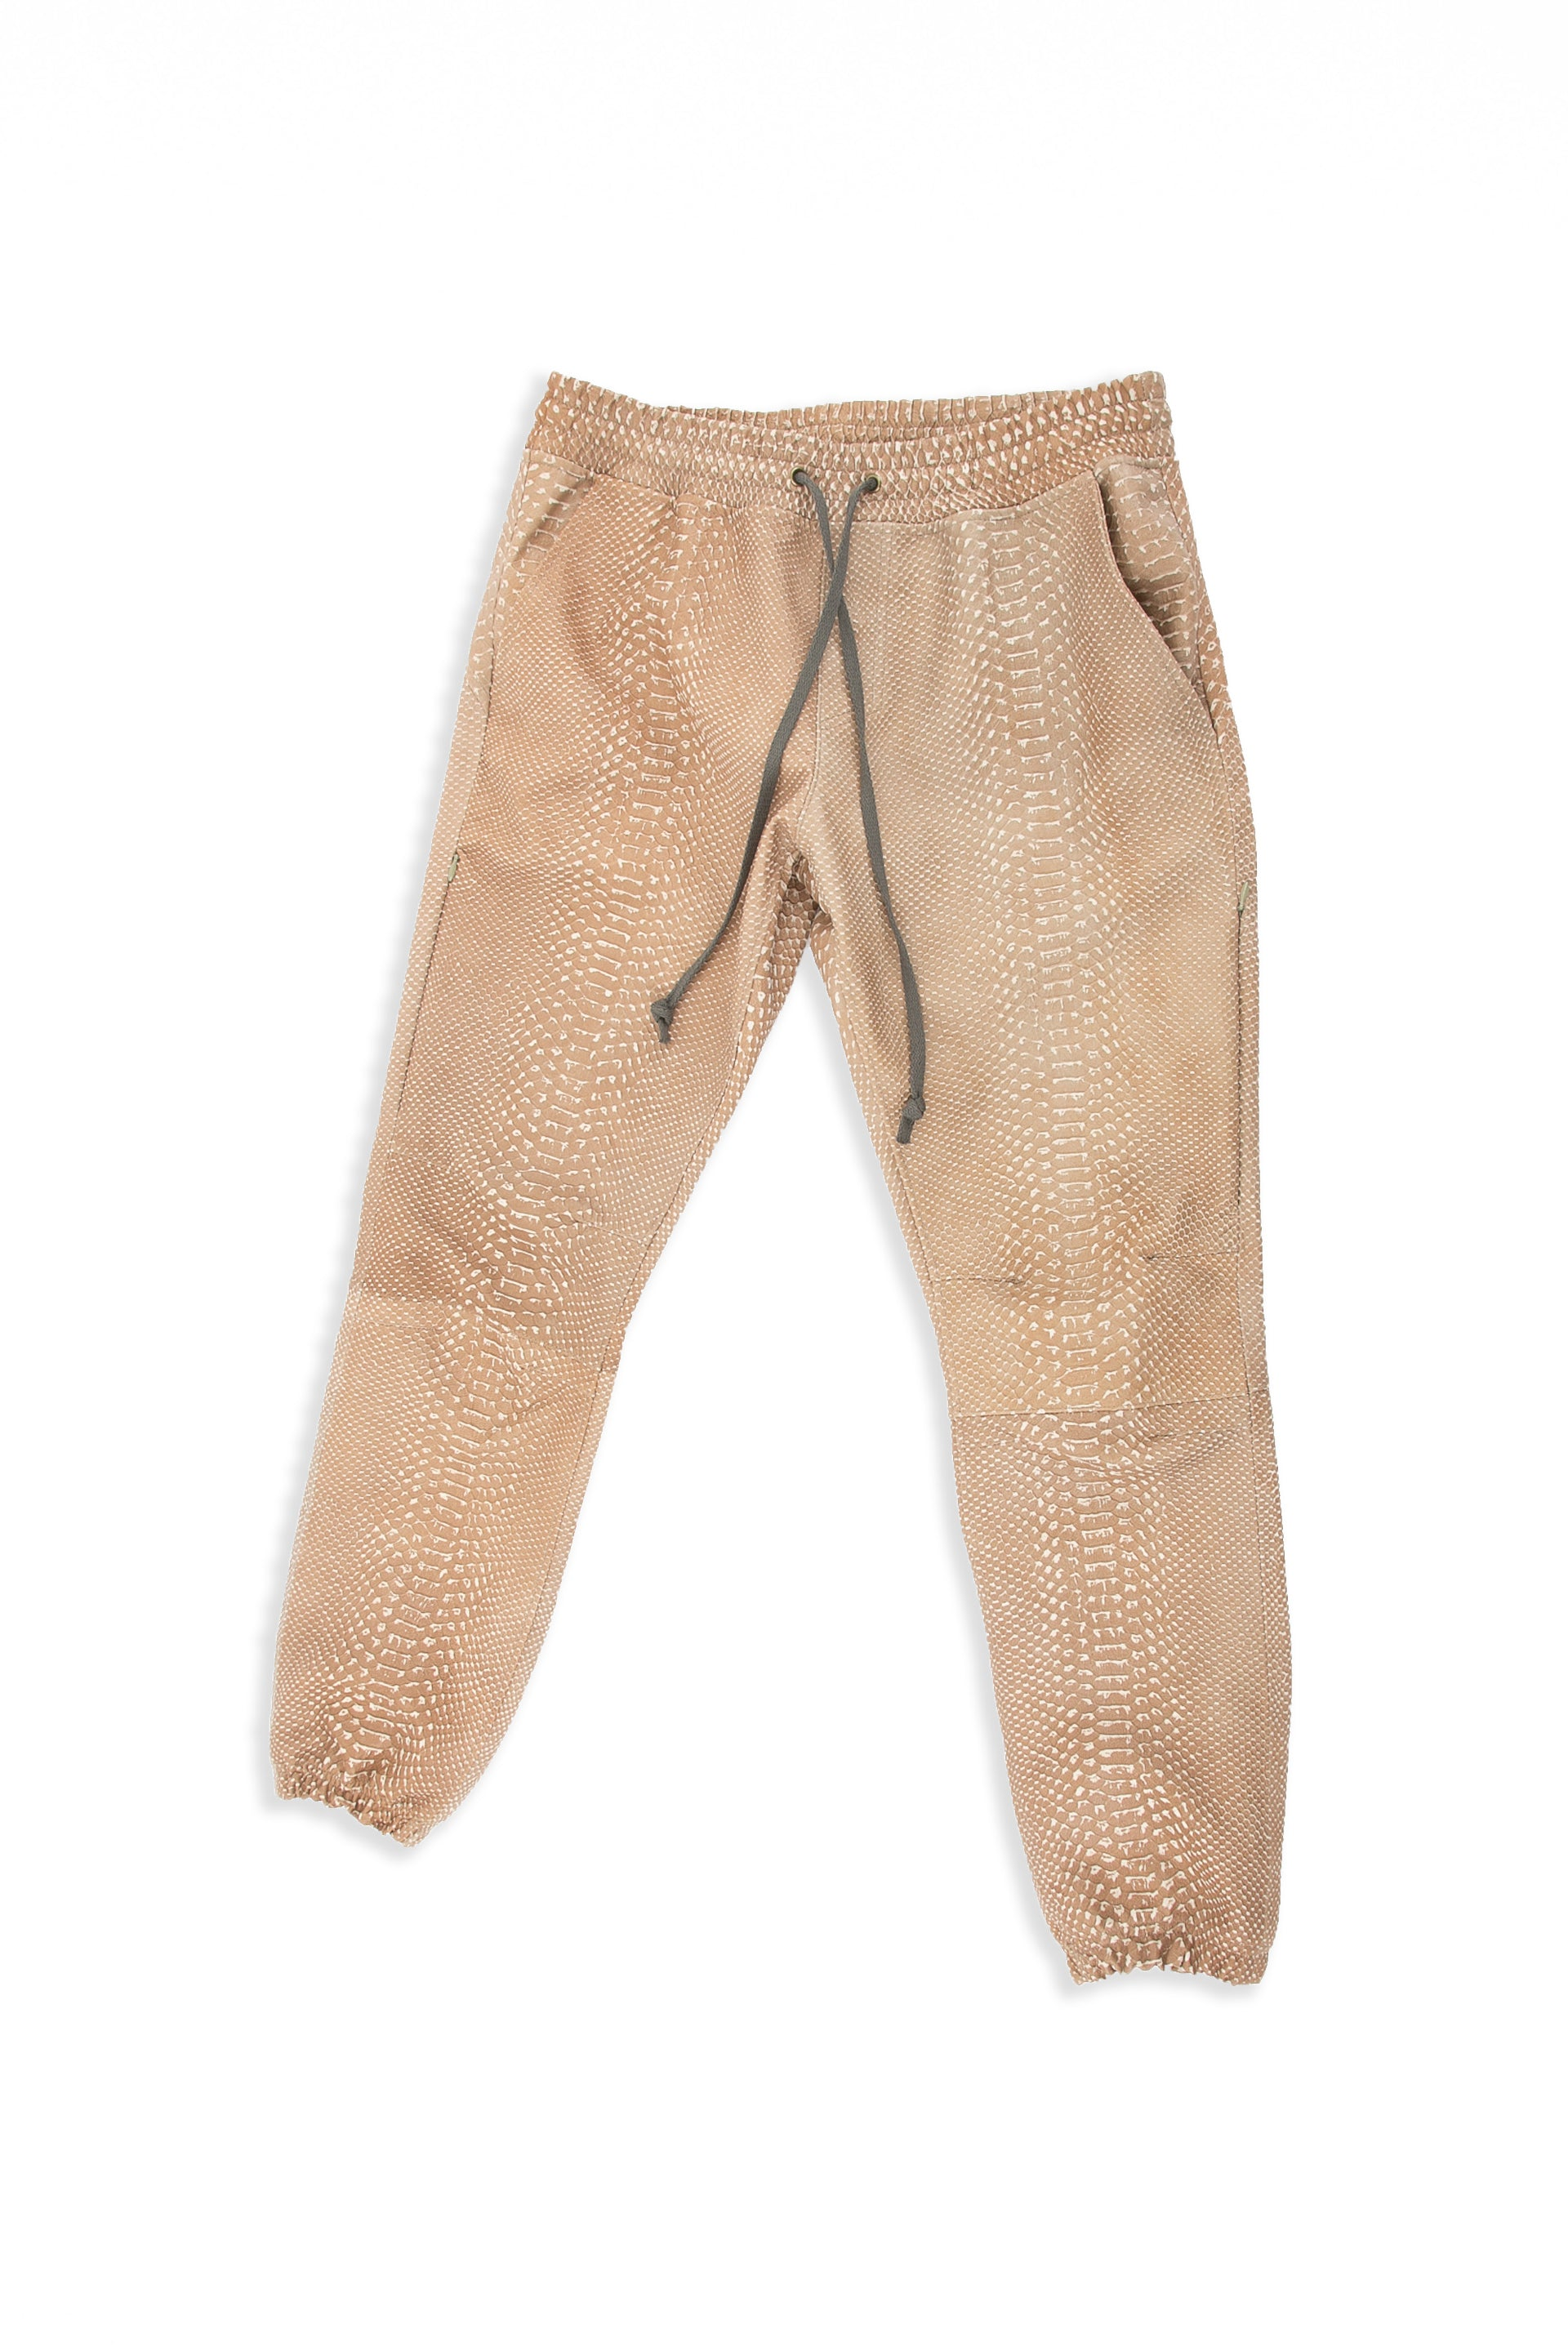 Snakeskin Jogger in Tan